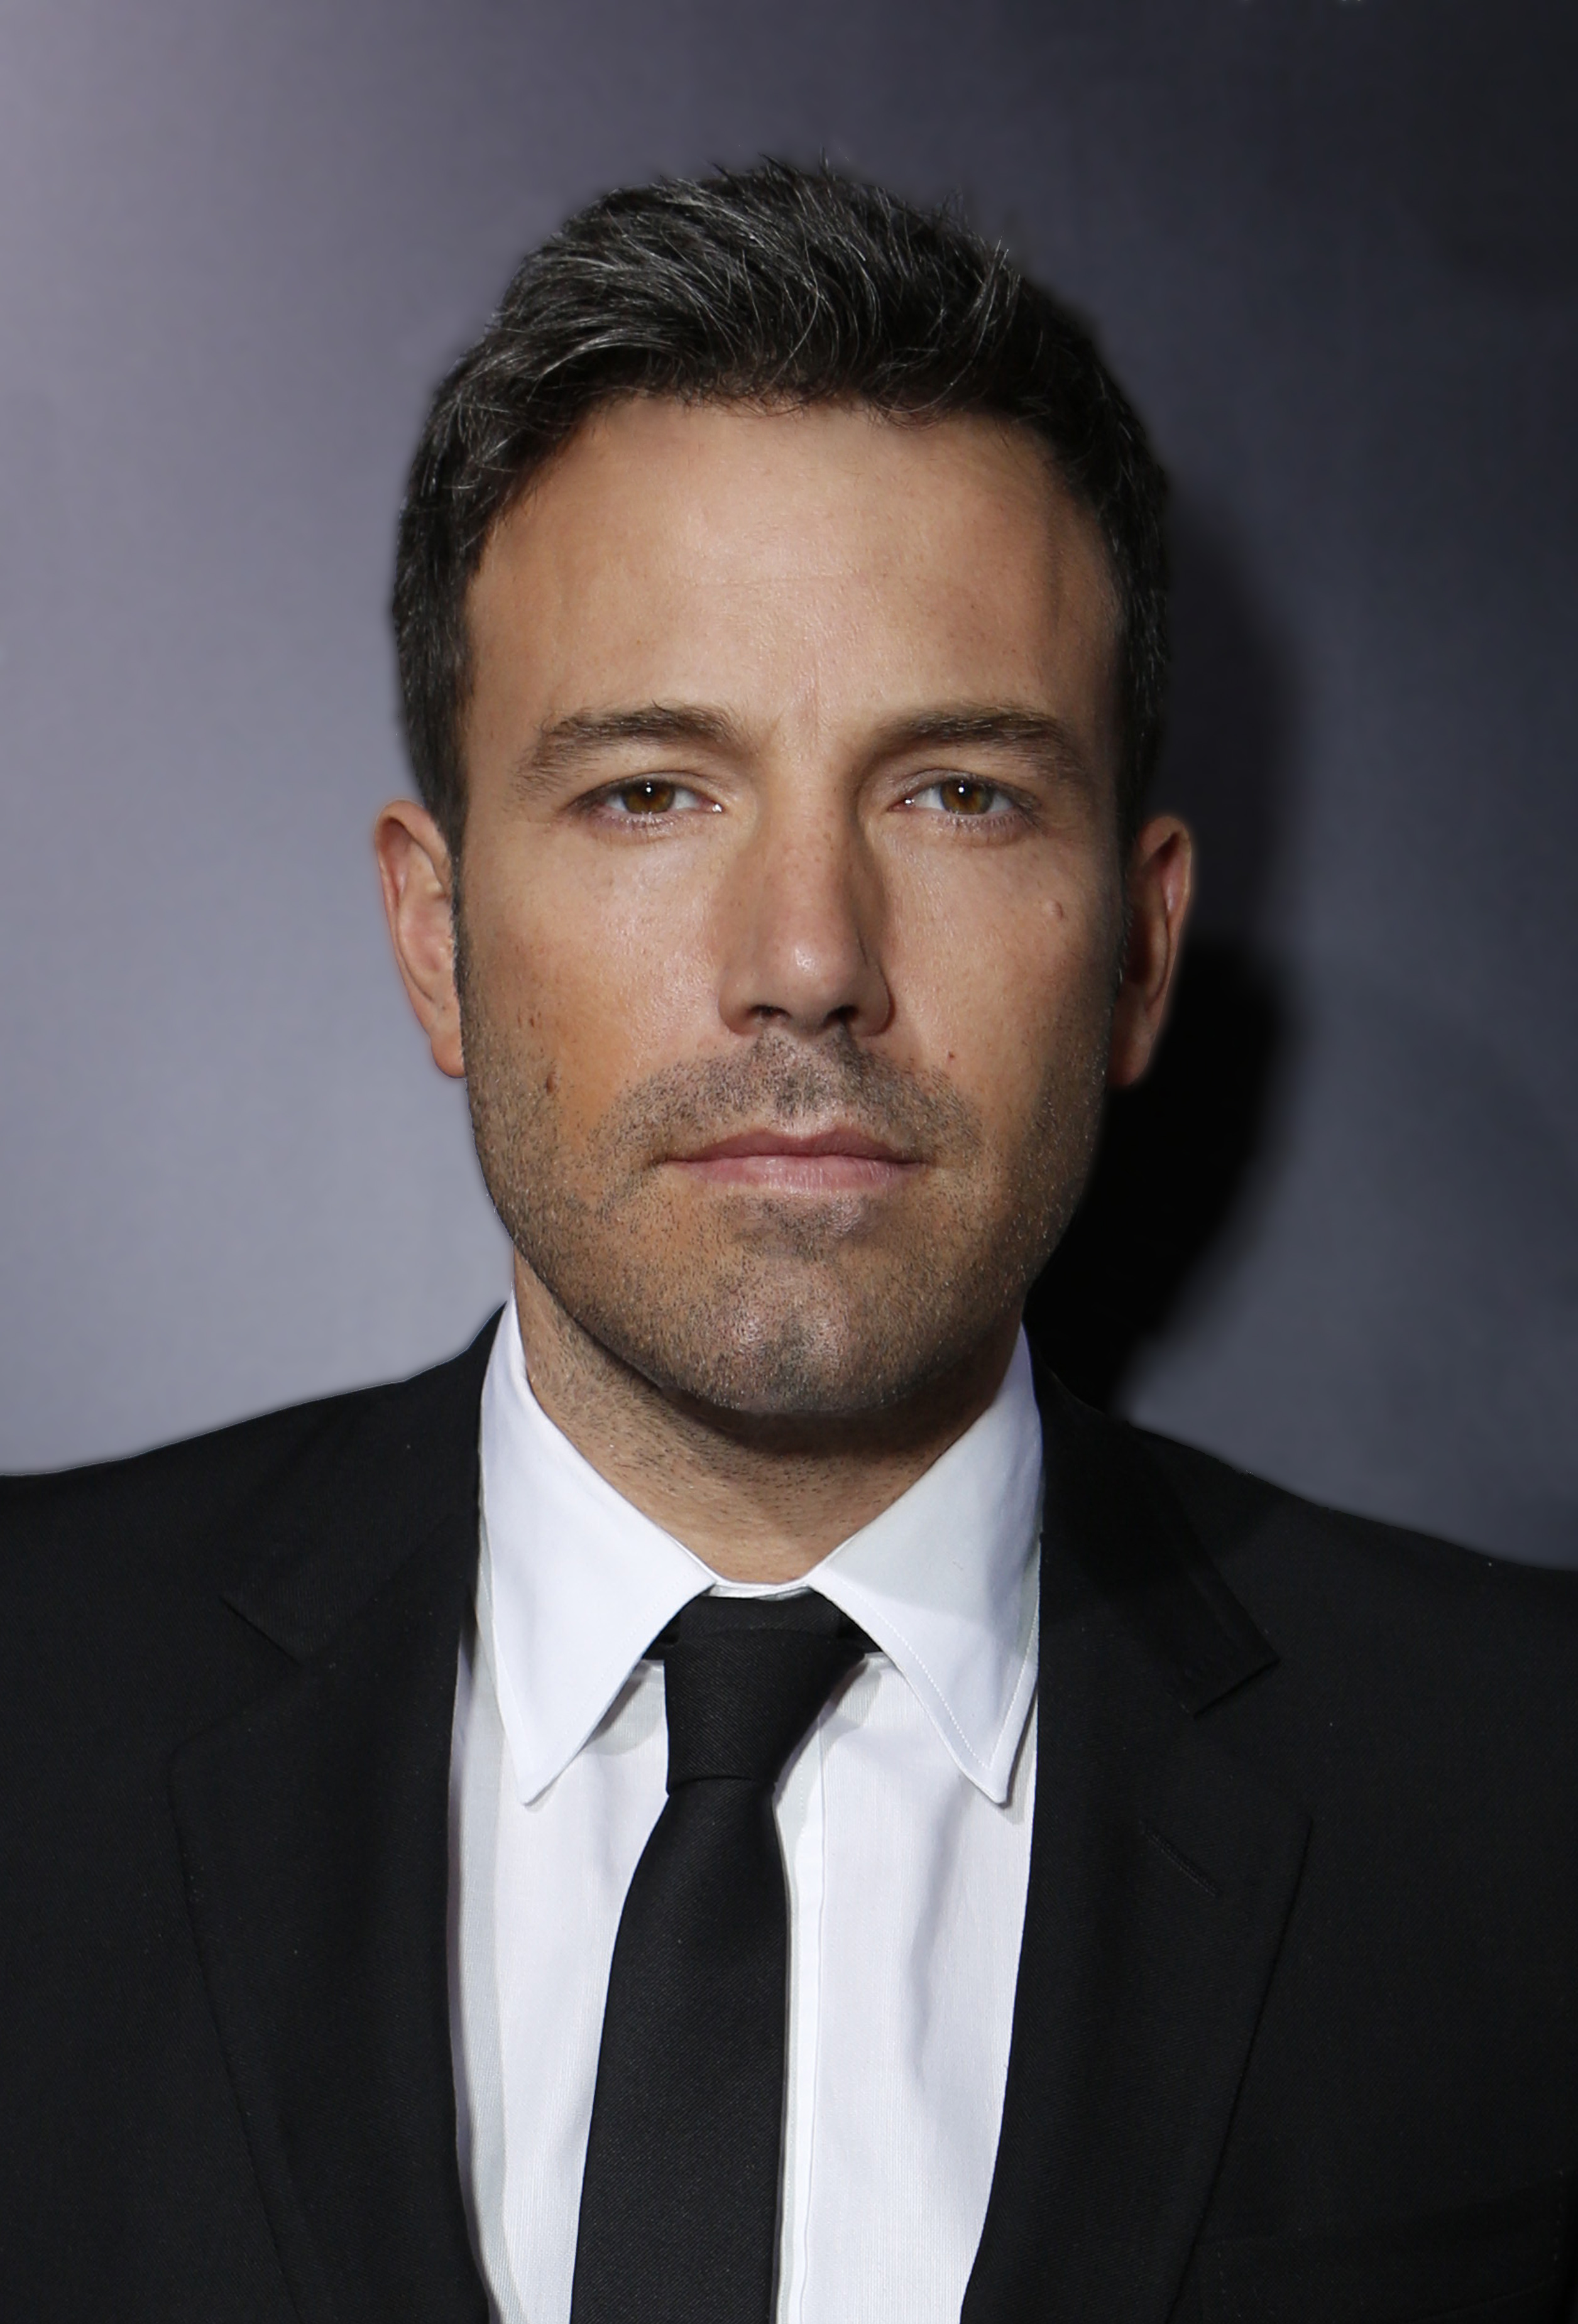 Ben Affleck To Be Honored At The 22nd Annual UCLA Film ...